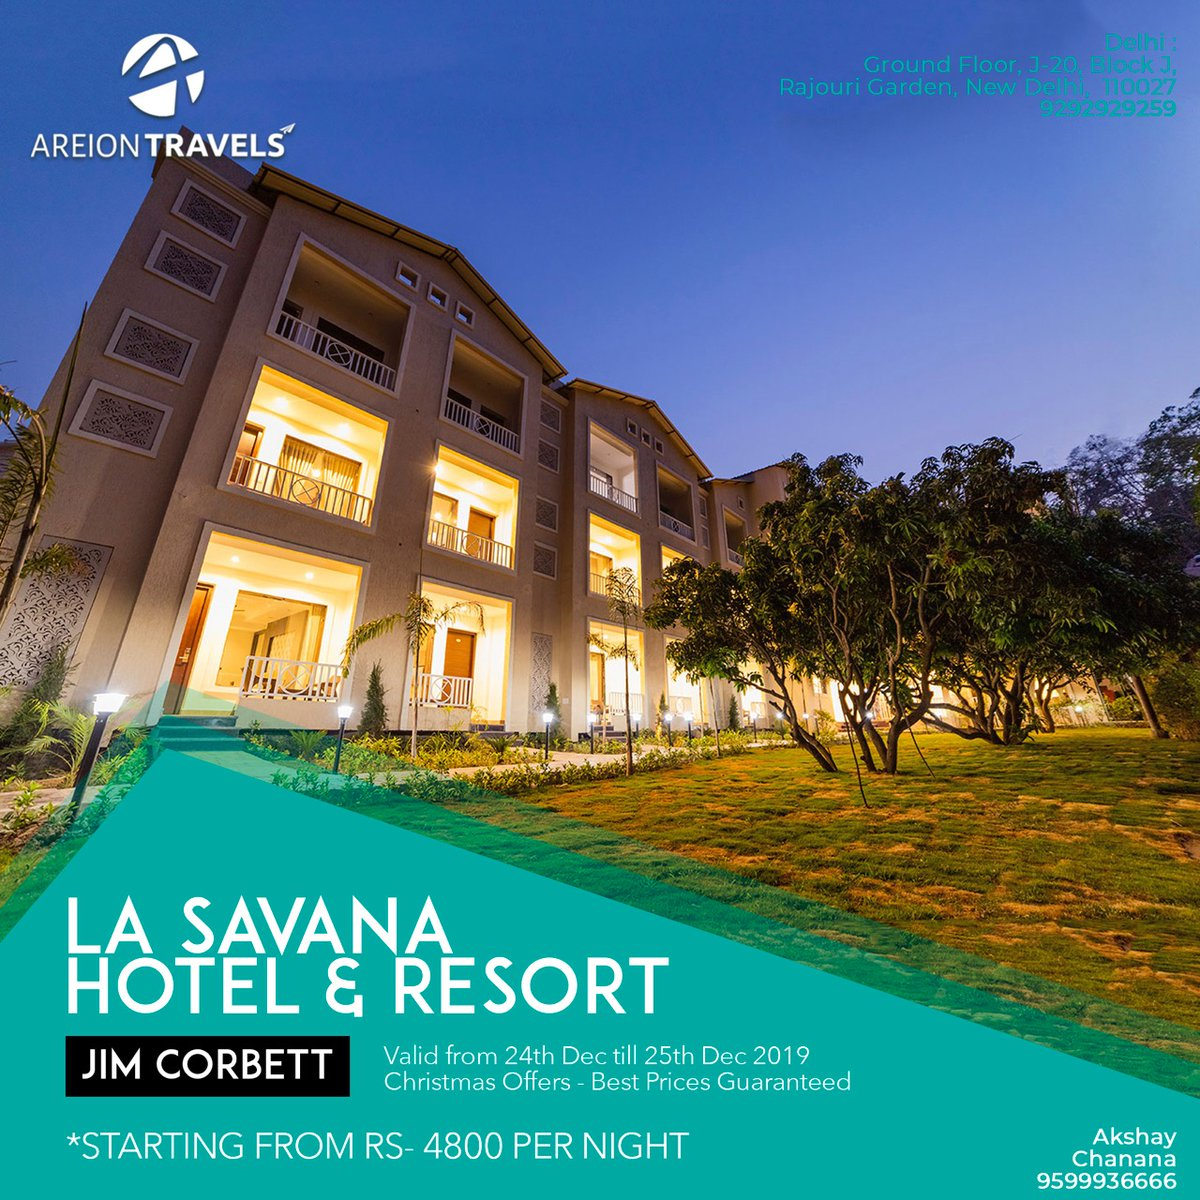 Our Christmas special package at La Savana Hotel And Resort brings you the perfect escape from the hectic city life. Great deals and discounts will keep your pockets lighter and your spirits high. Contact us today to know more - 9599936666.  #Corbett #ExploreTheWild pic.twitter.com/O9XkcmQHIX